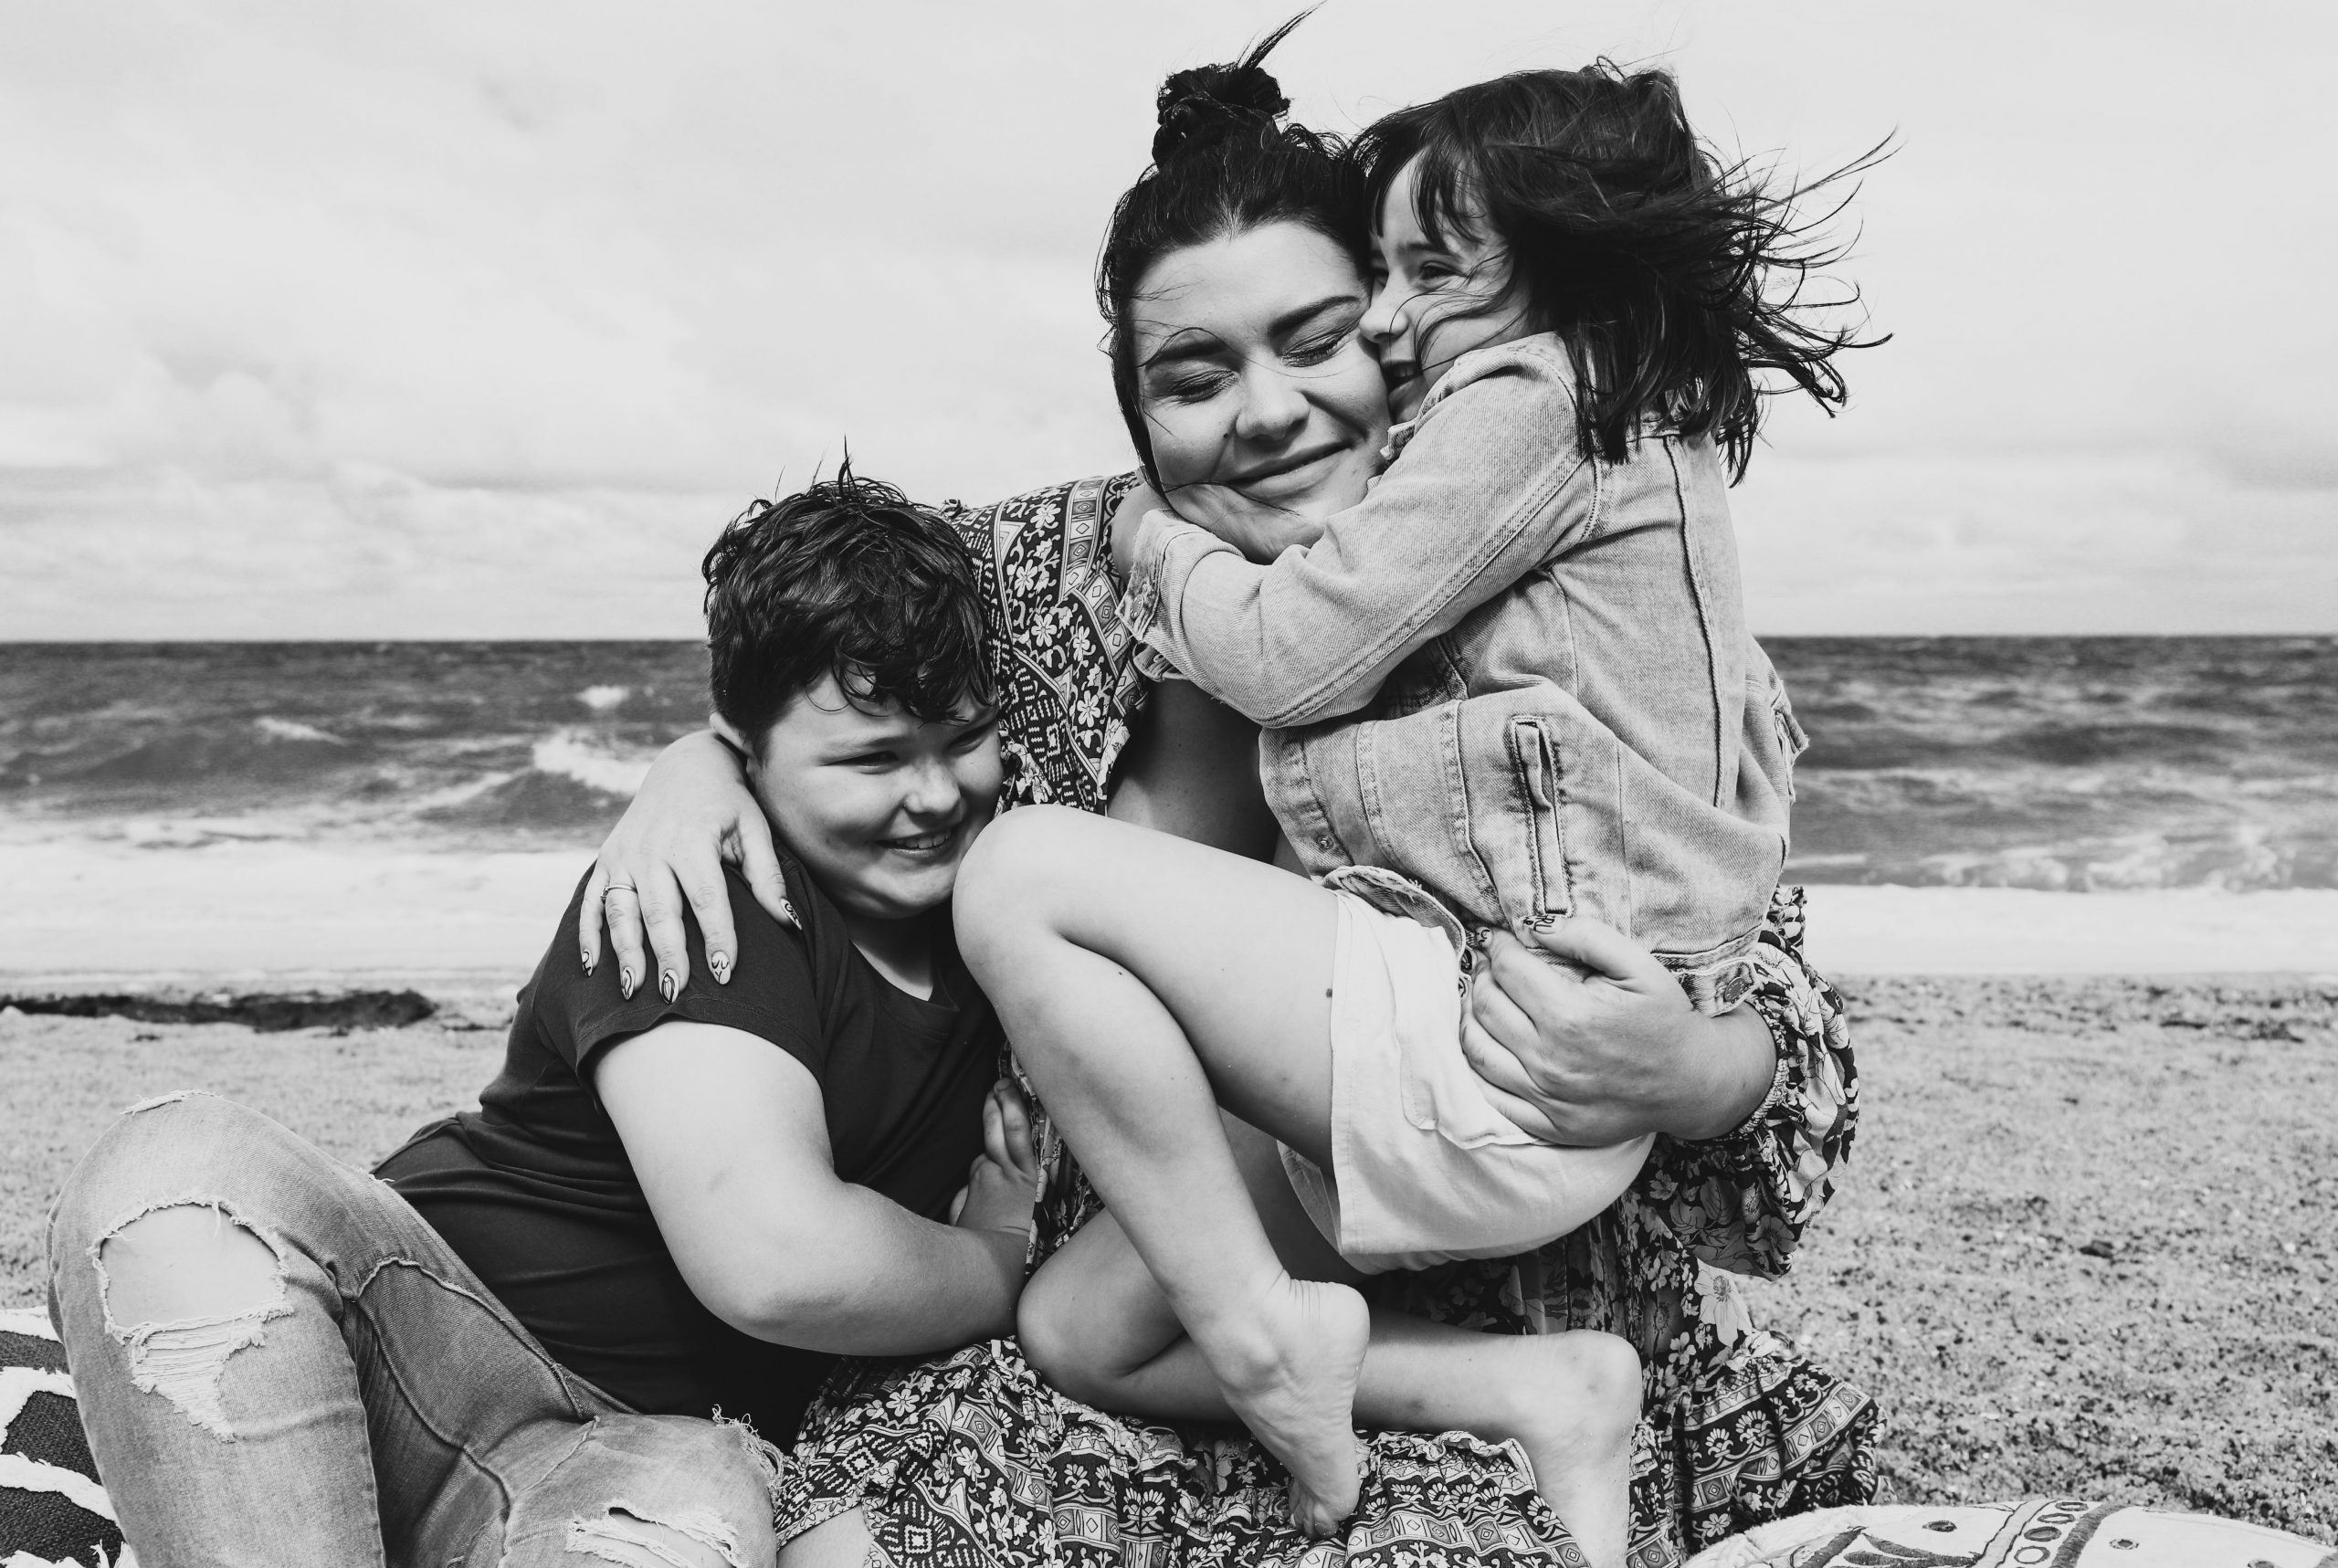 """""""Being Aboriginal gives you resilience"""" – Murri Mama Justine Reid on Motherhood, Trauma, and Speaking Out"""